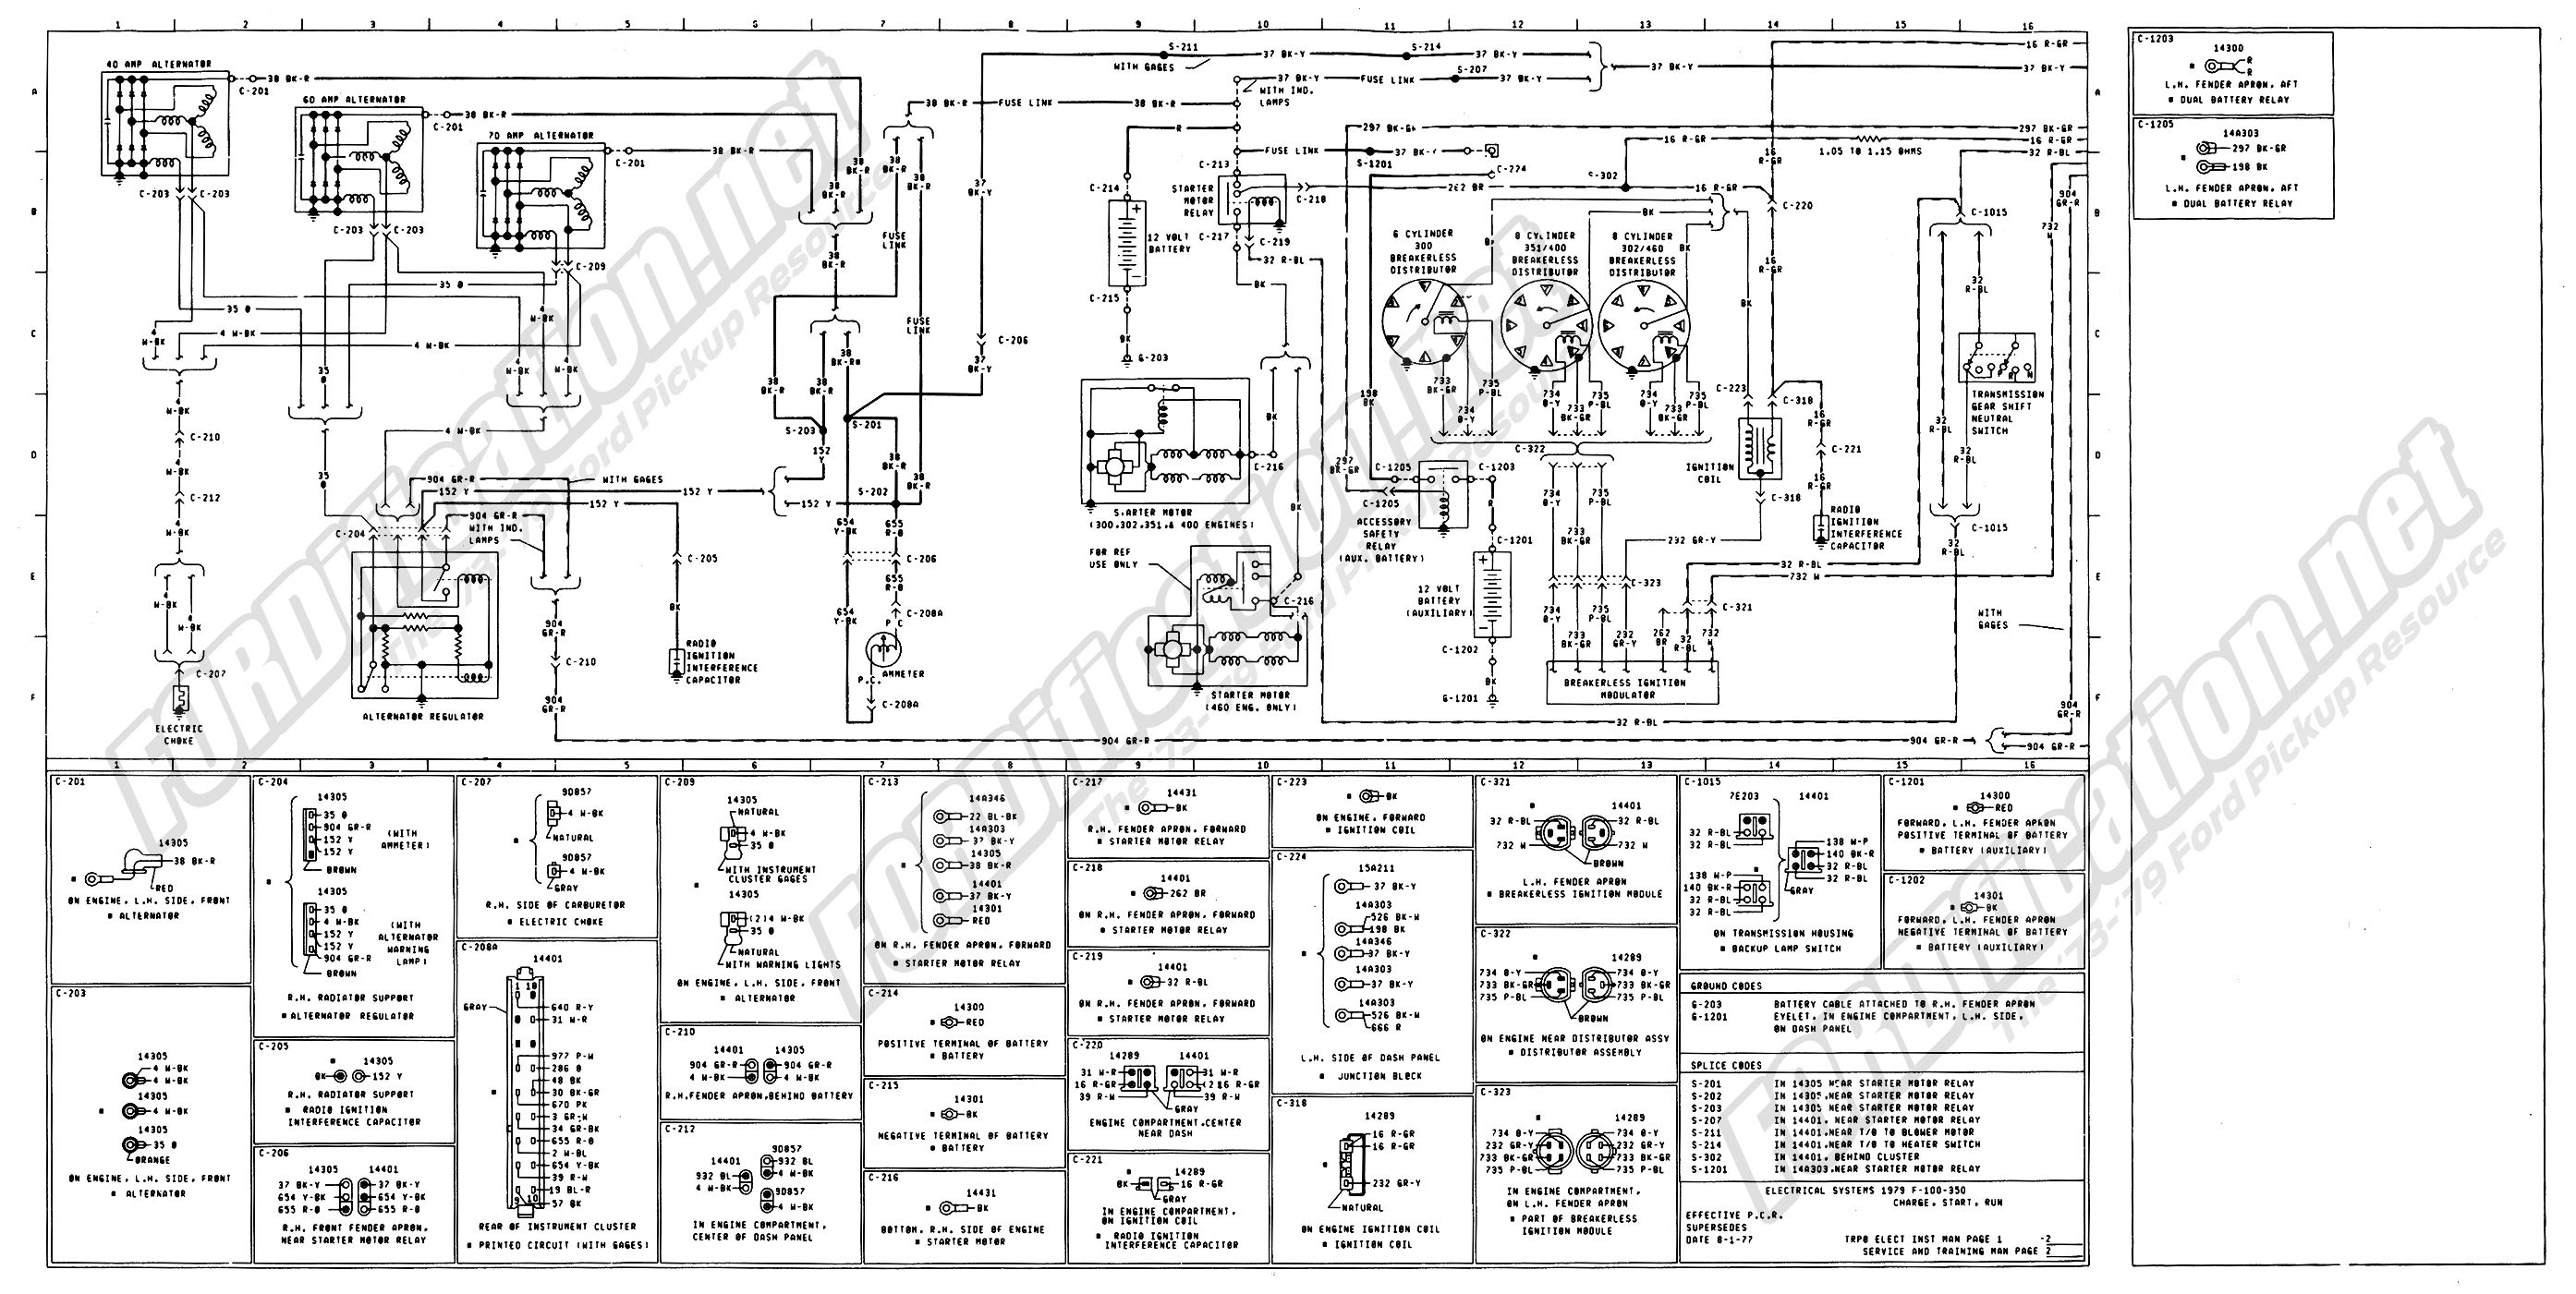 Wiring Master Of on 1992 Ford F350 Fuse Panel Diagram